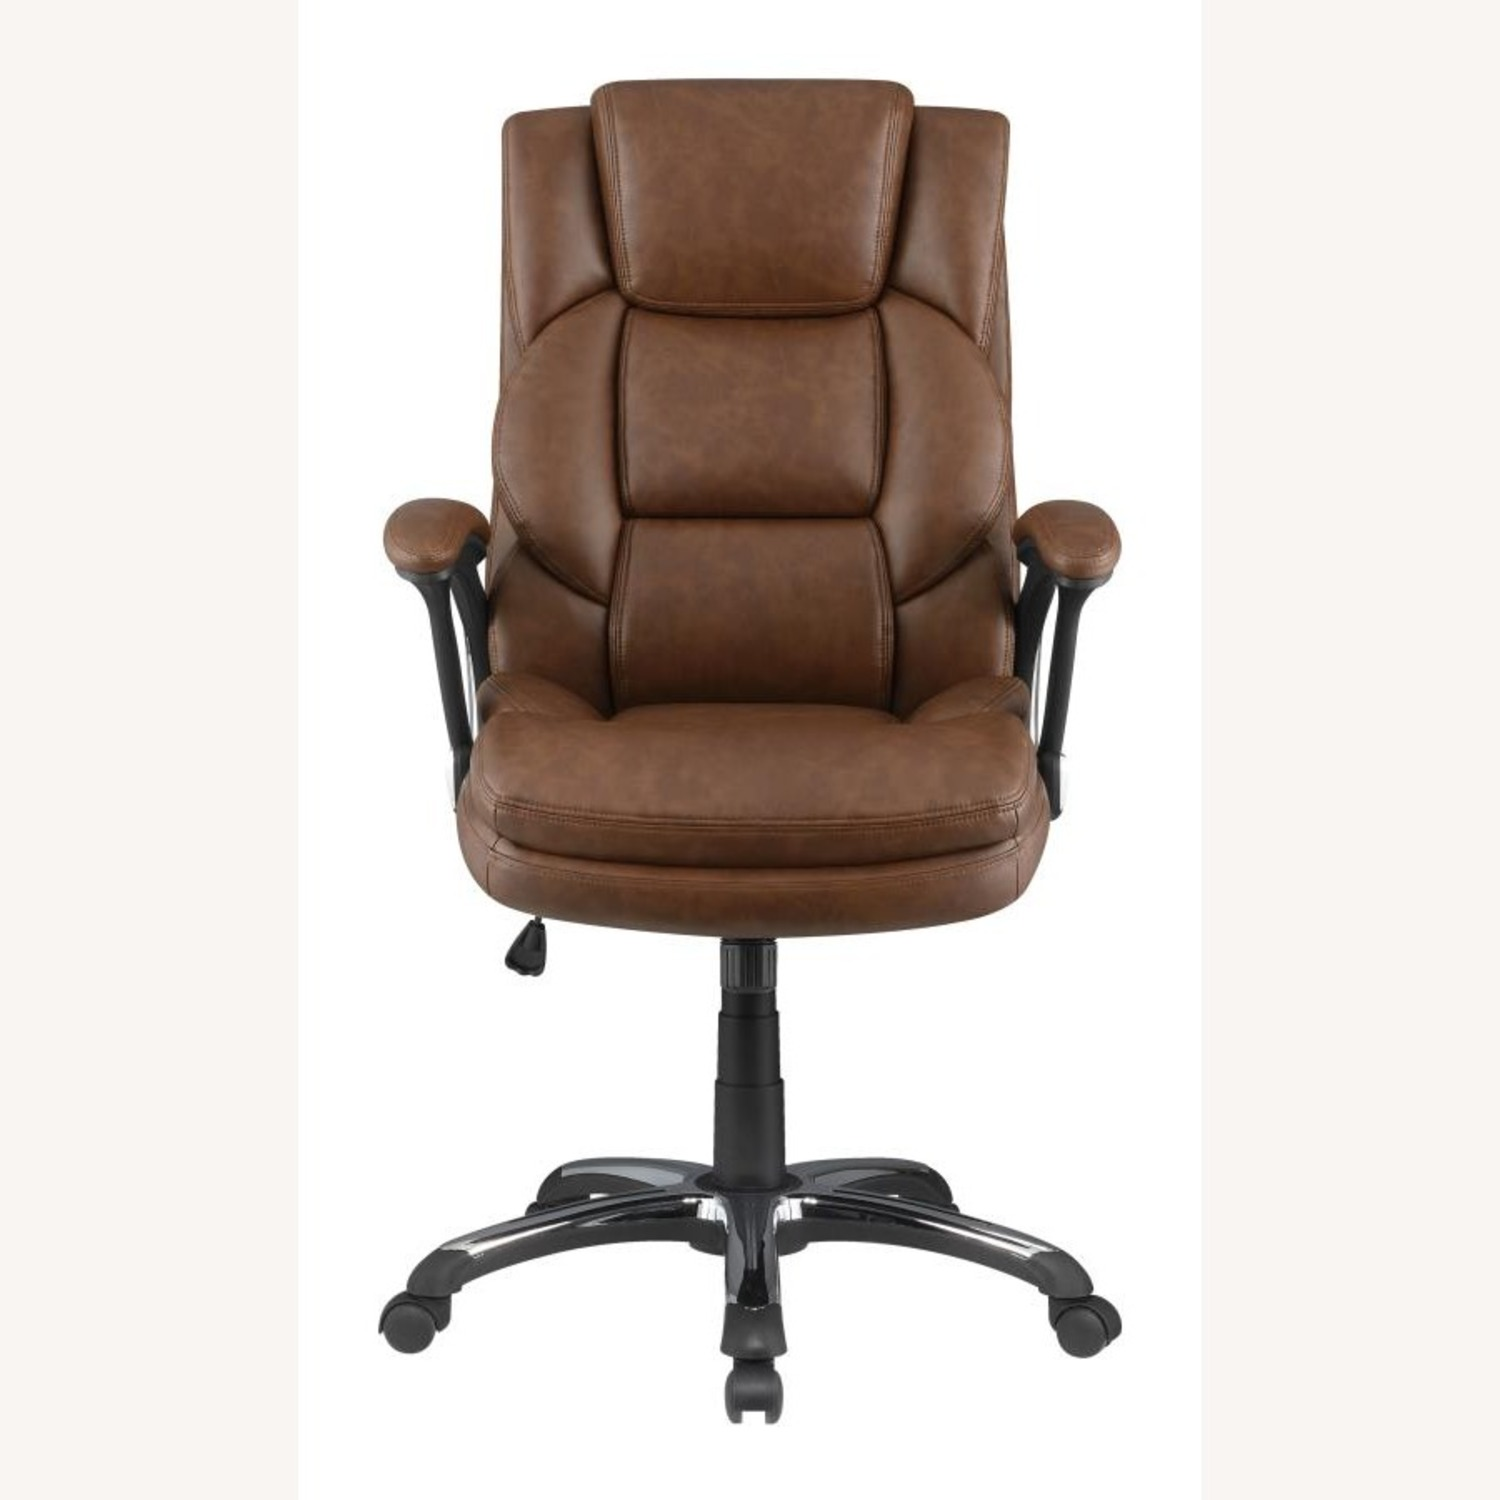 Office Chair In Tufted Brown Leatherette Finish - image-1